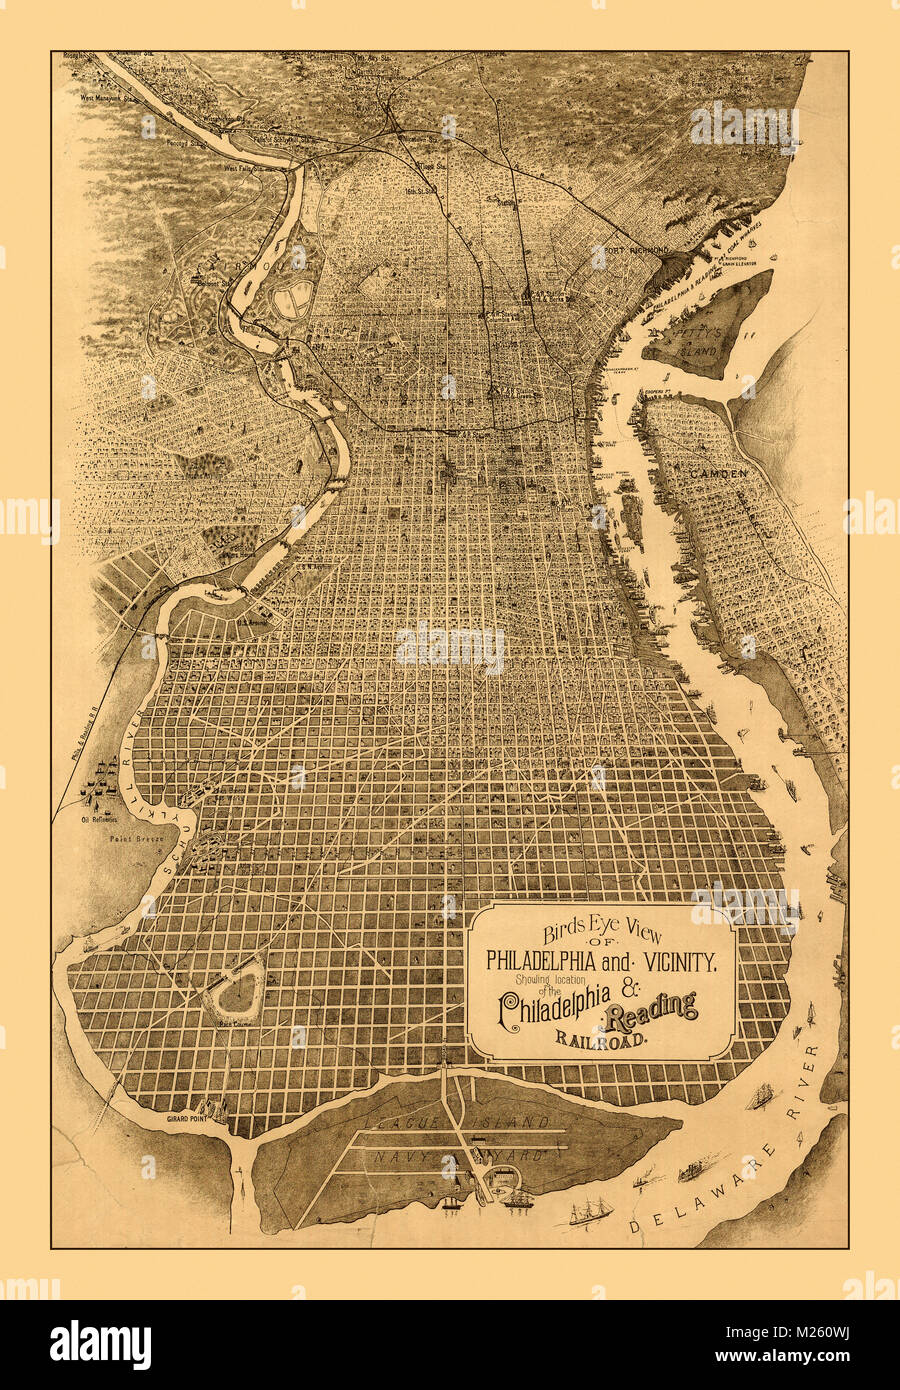 historic map of philadelphia Historical Map Of Philadelphia Circa 1870 Stock Photo Alamy historic map of philadelphia